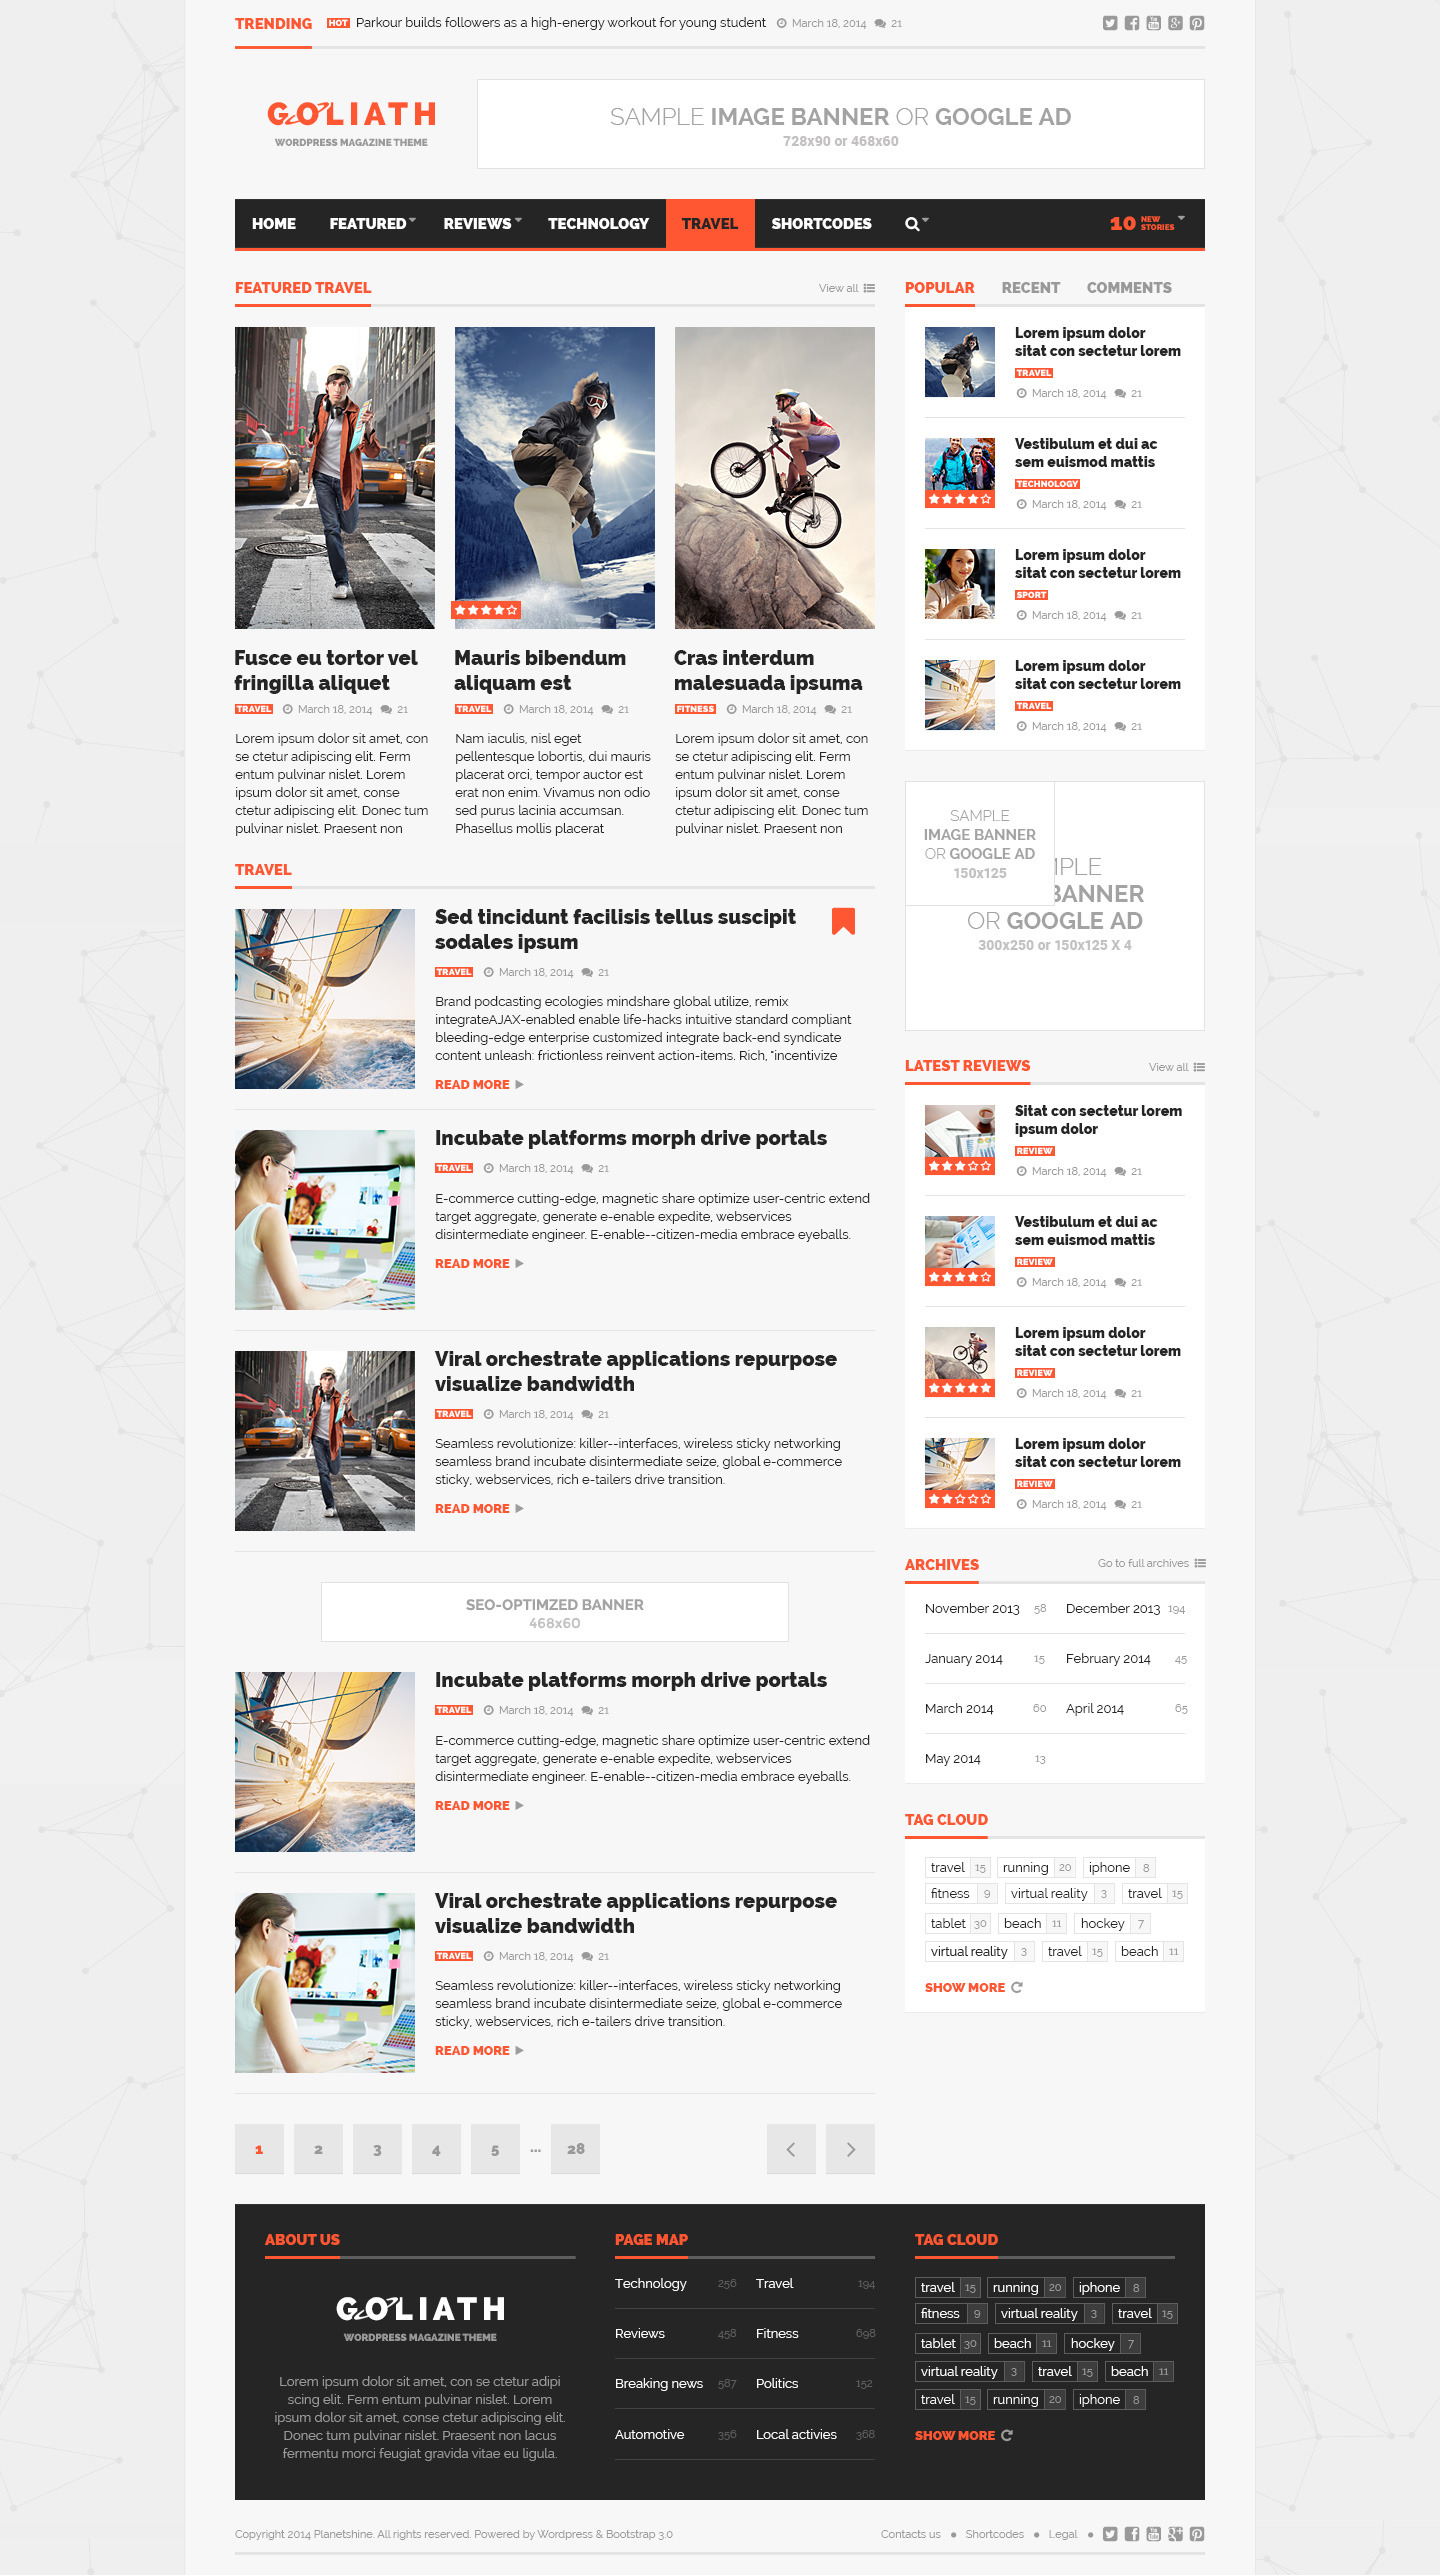 goliath ads optimized news reviews magazine by planetshine goliath ads optimized news reviews magazine